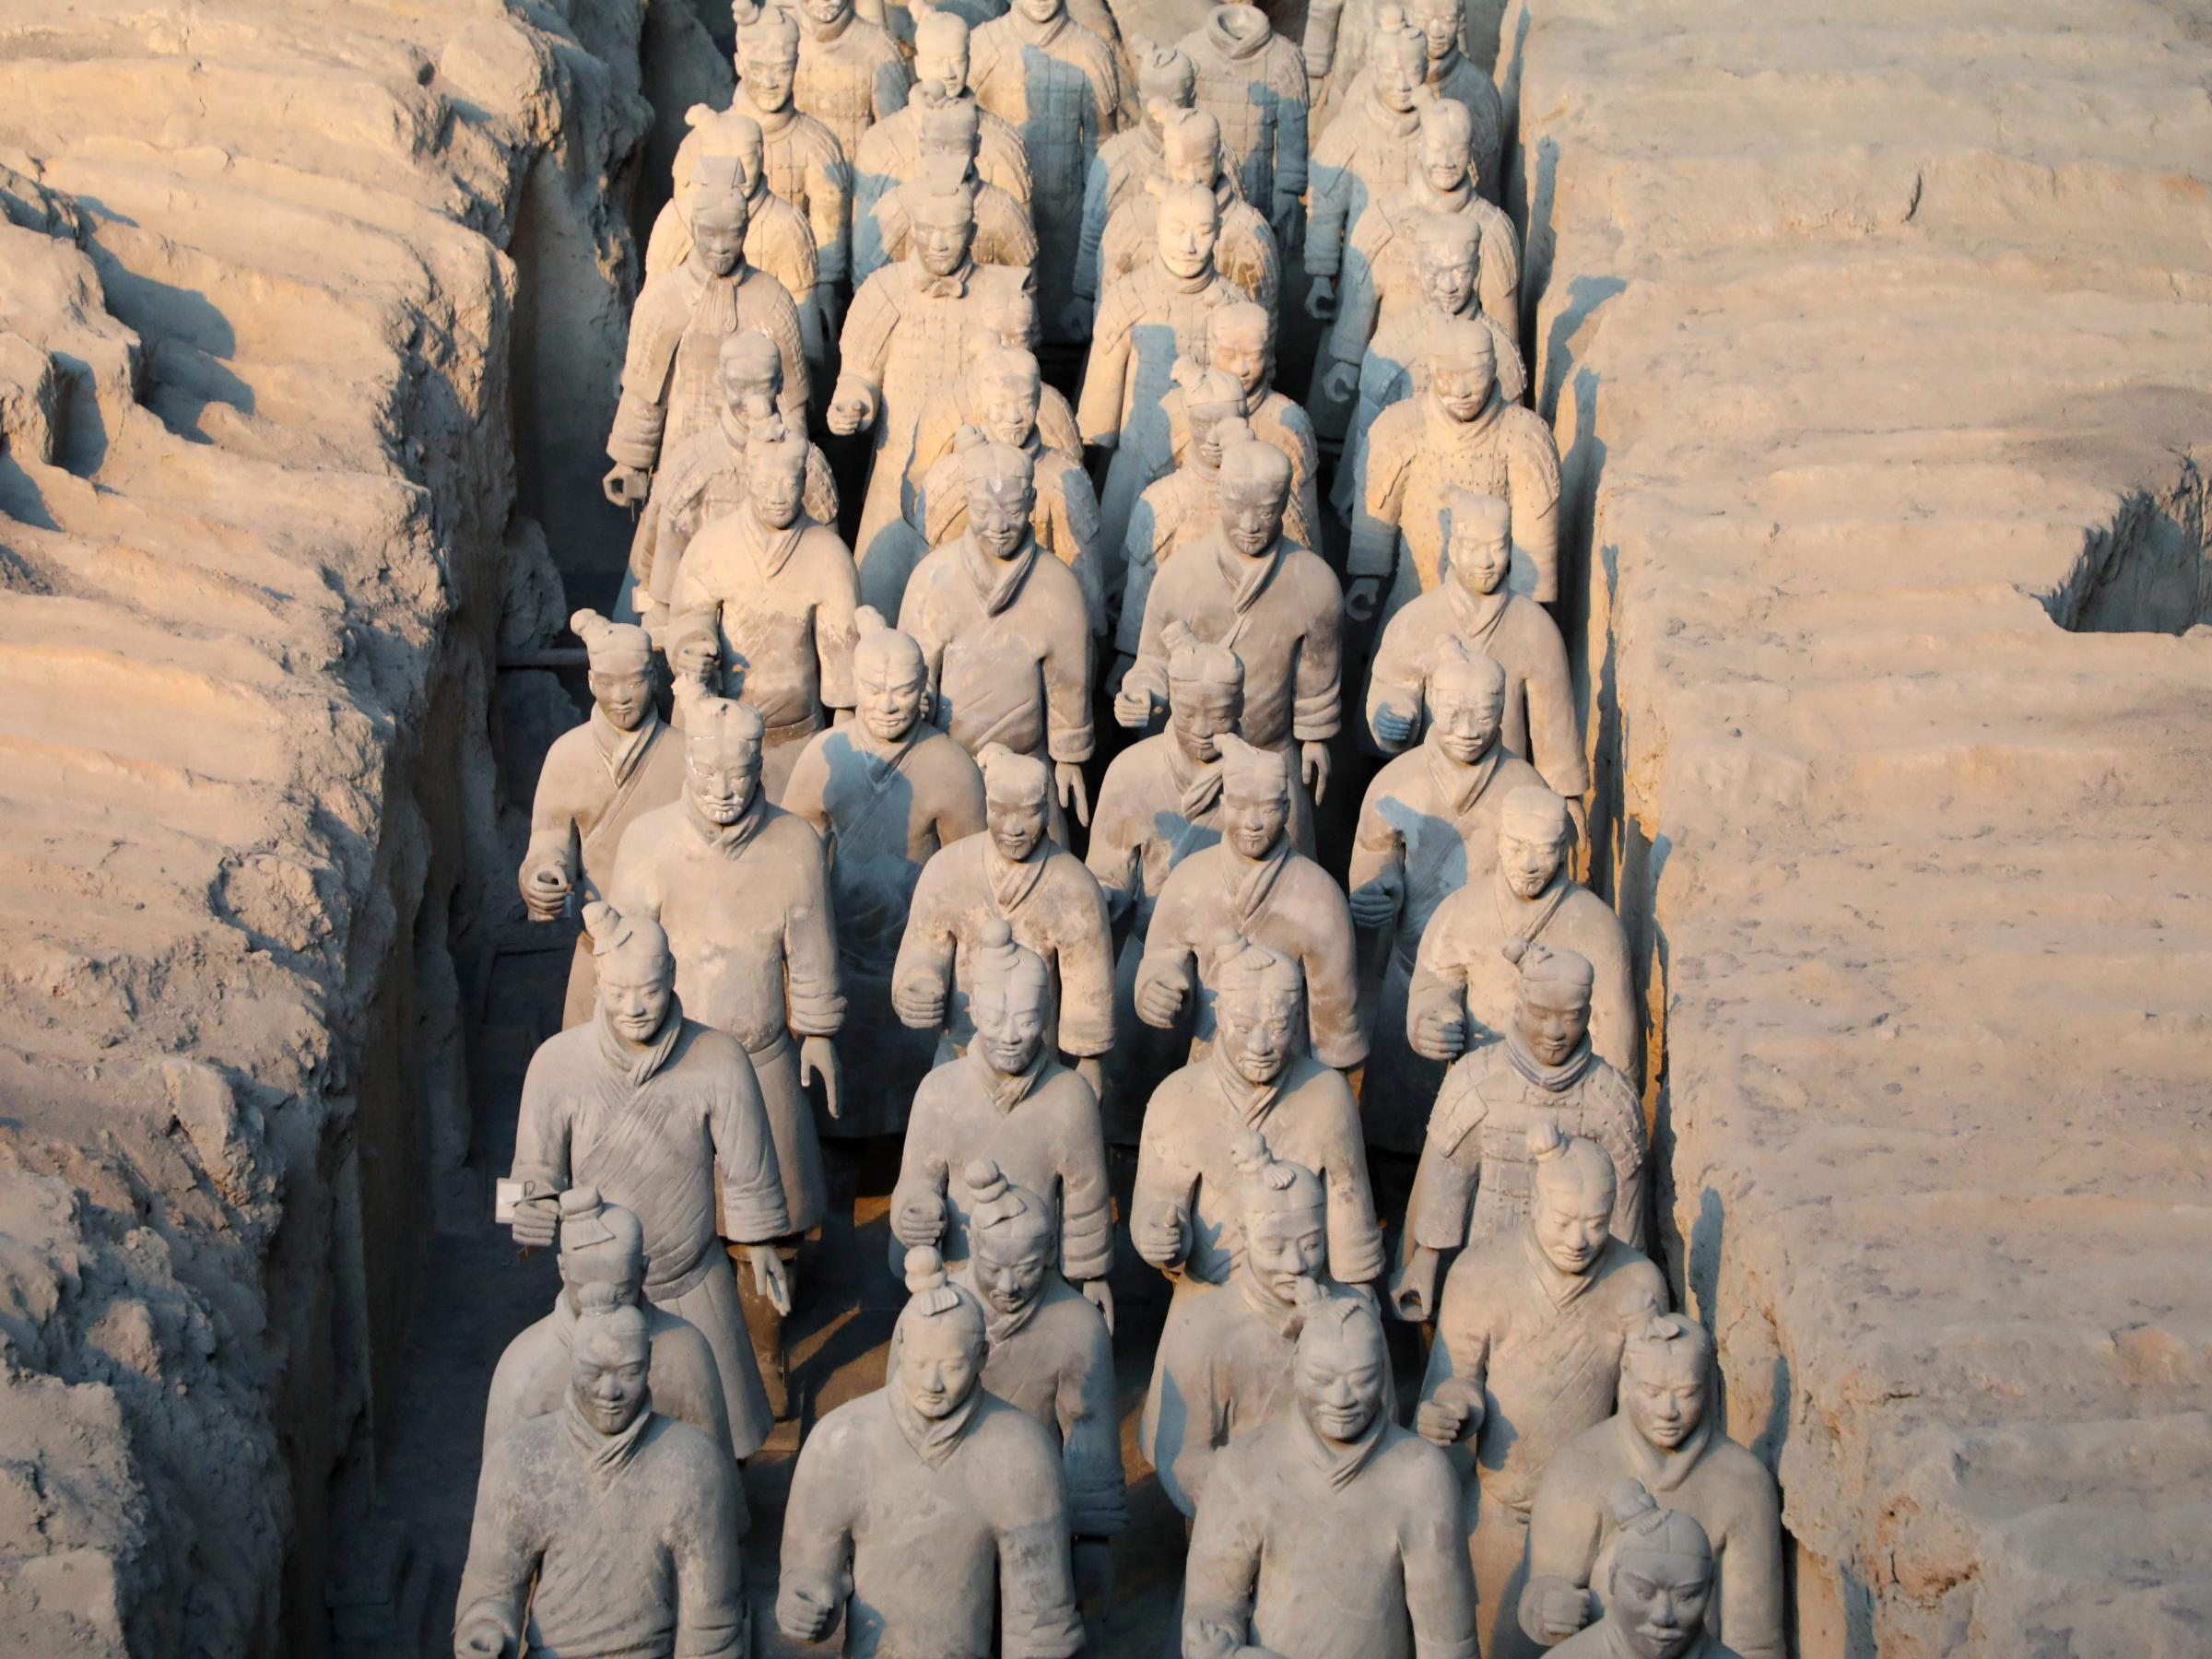 Archaeologist Who Uncovered China's 8,000-Man Terra Cotta